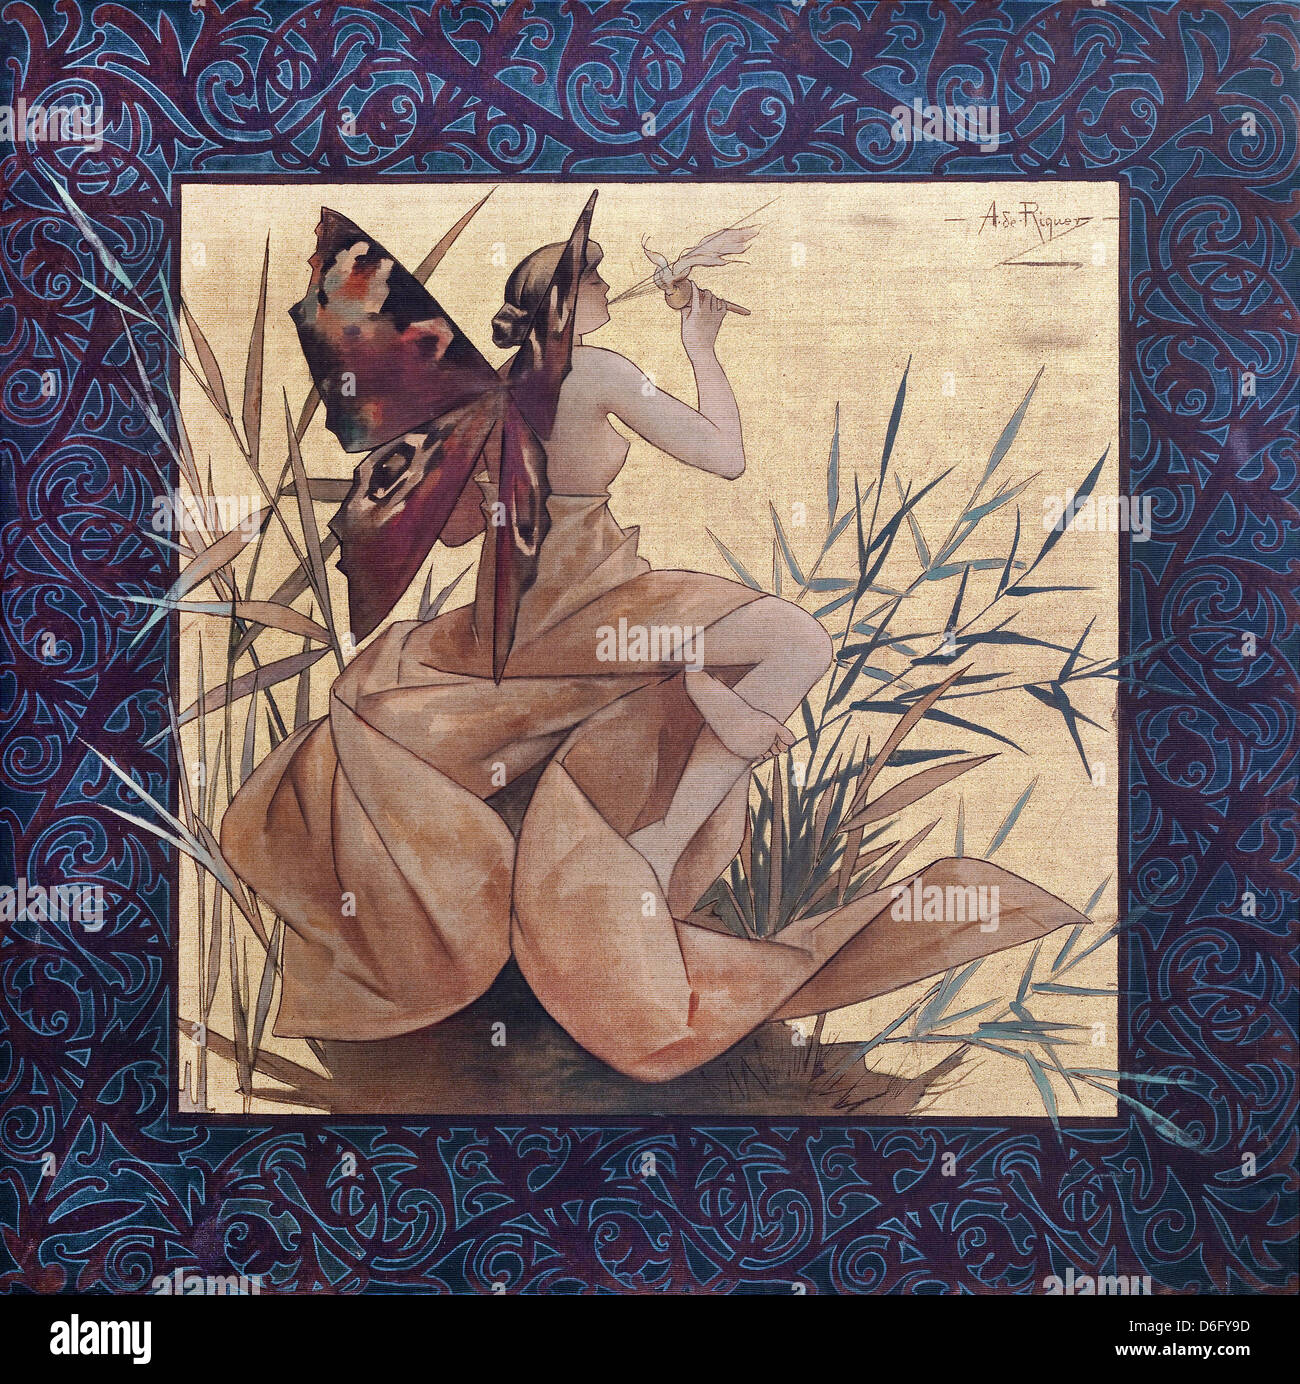 Alexandre de Riquer, Composition with winged nymph blowing amongst reeds 1887 Tempera on canvas. - Stock Image